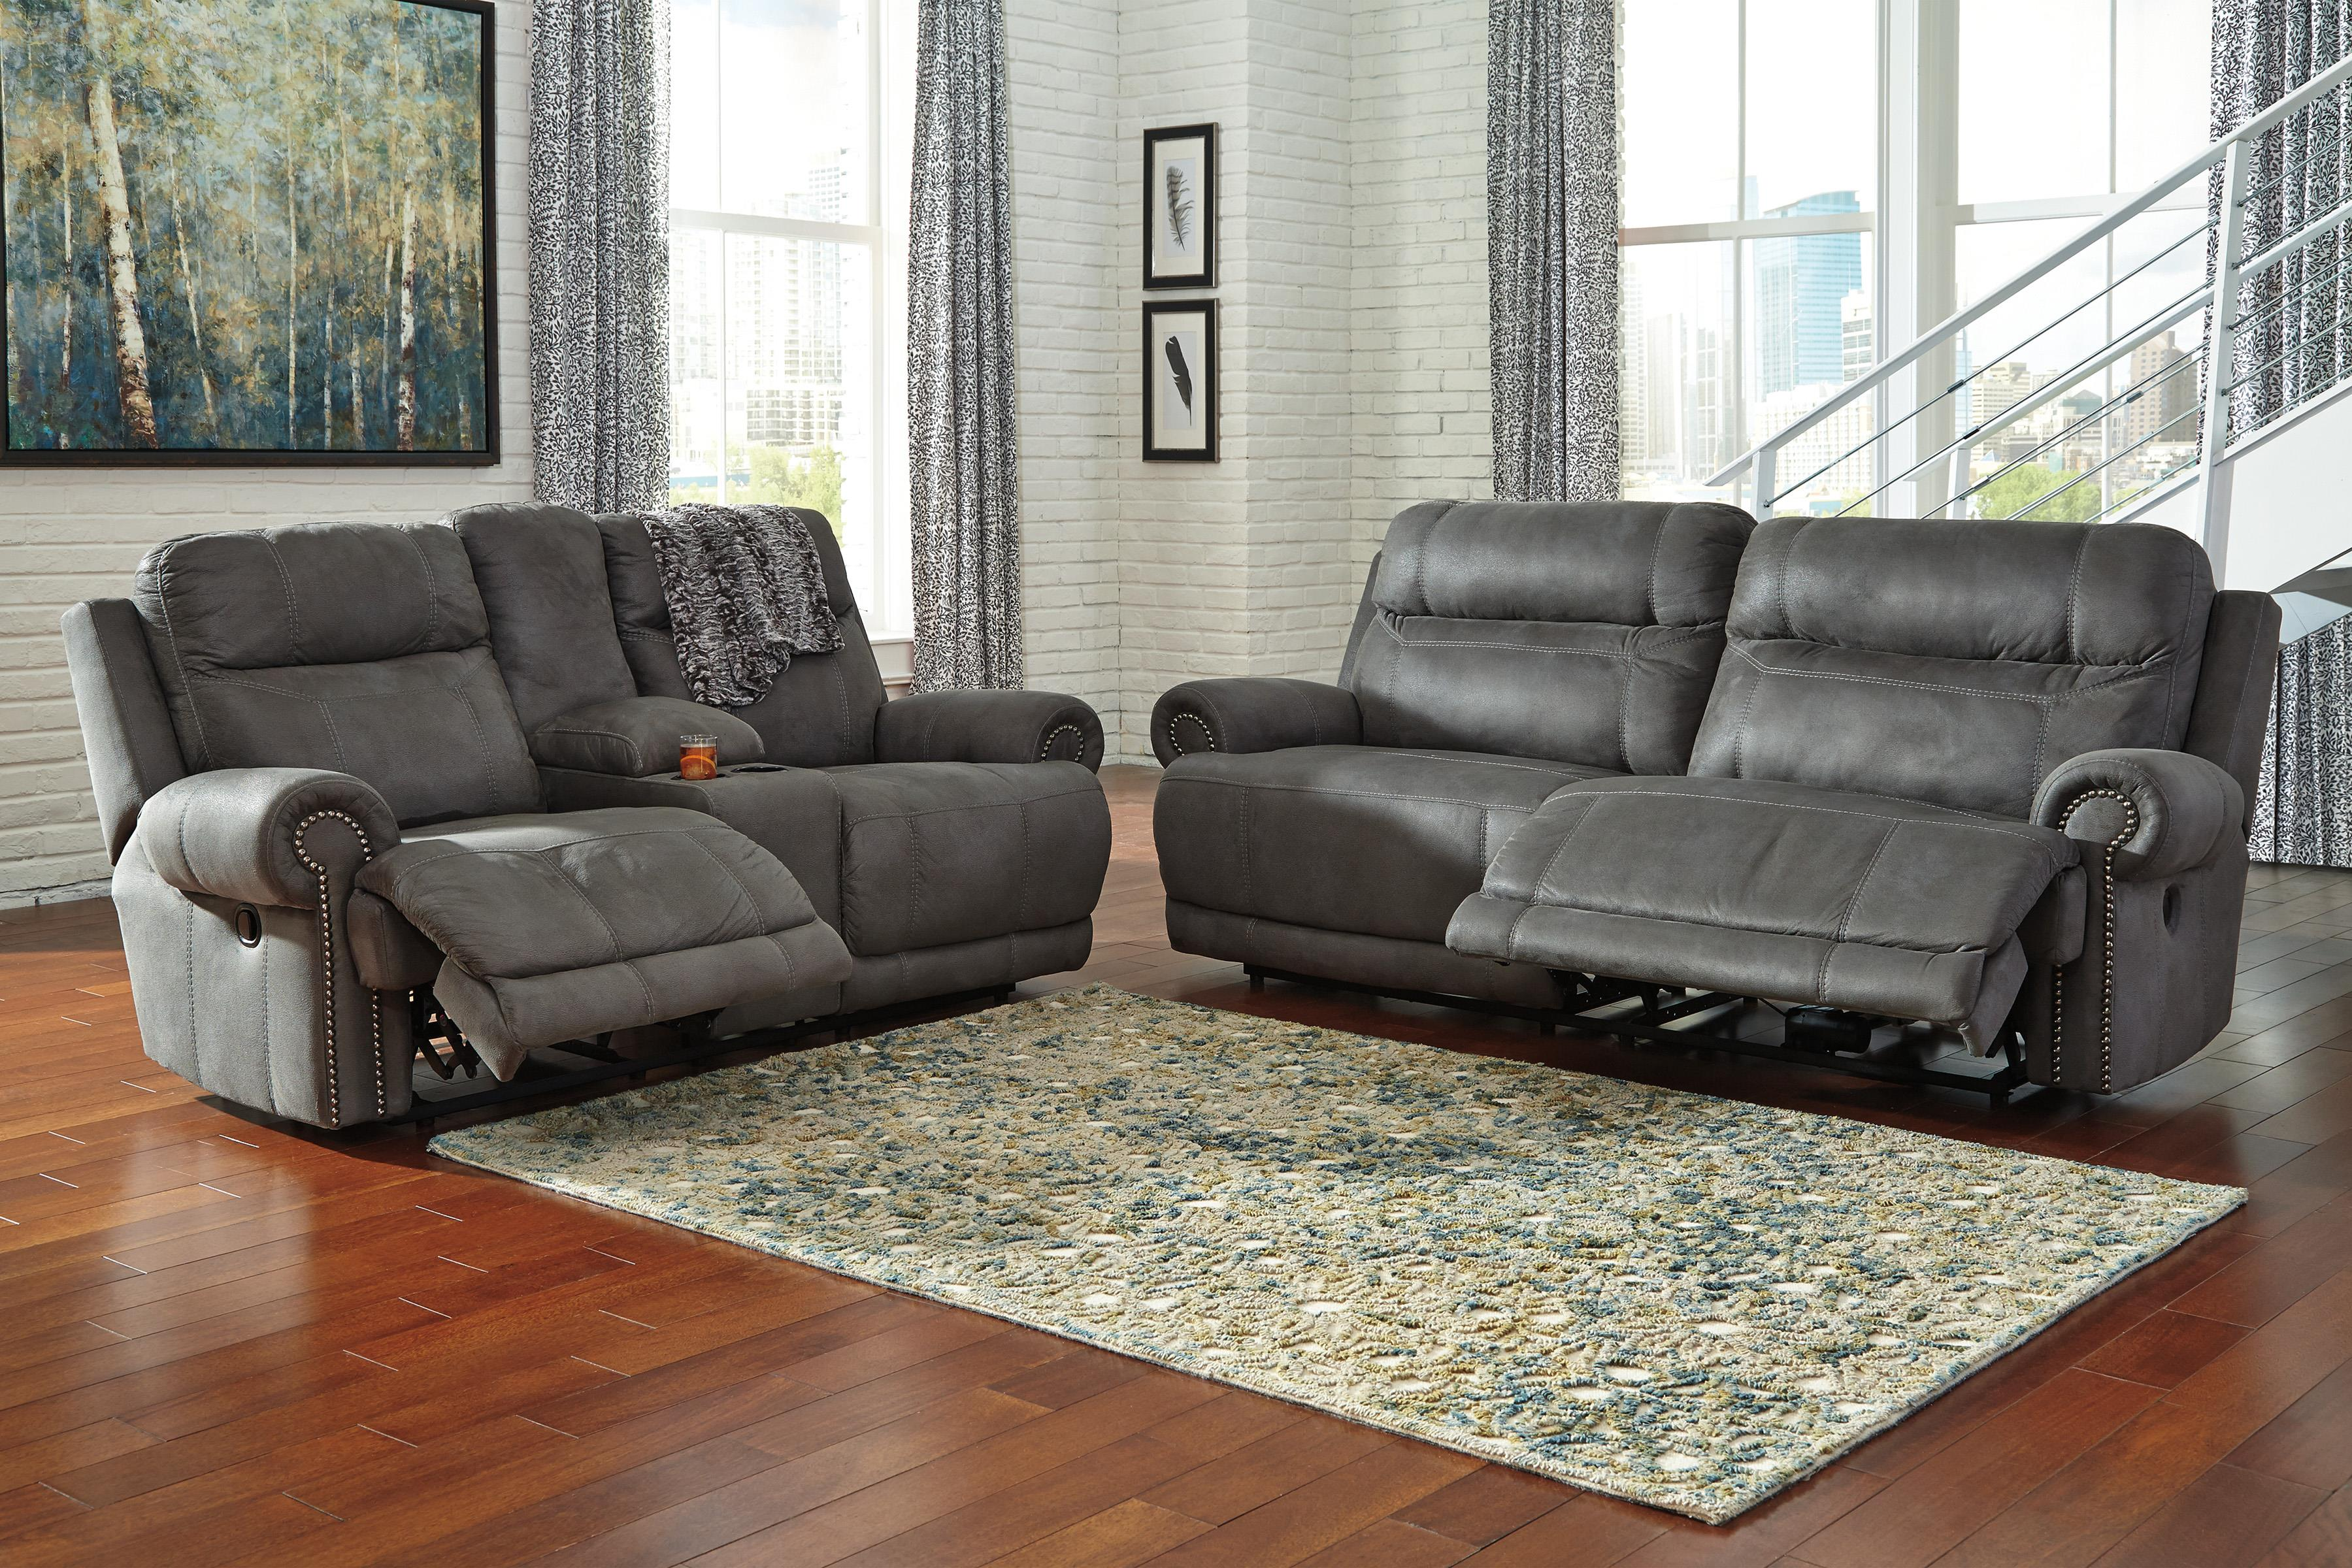 Austere - Gray Power Reclining Living Room Group by Signature Design by Ashley at Lapeer Furniture & Mattress Center